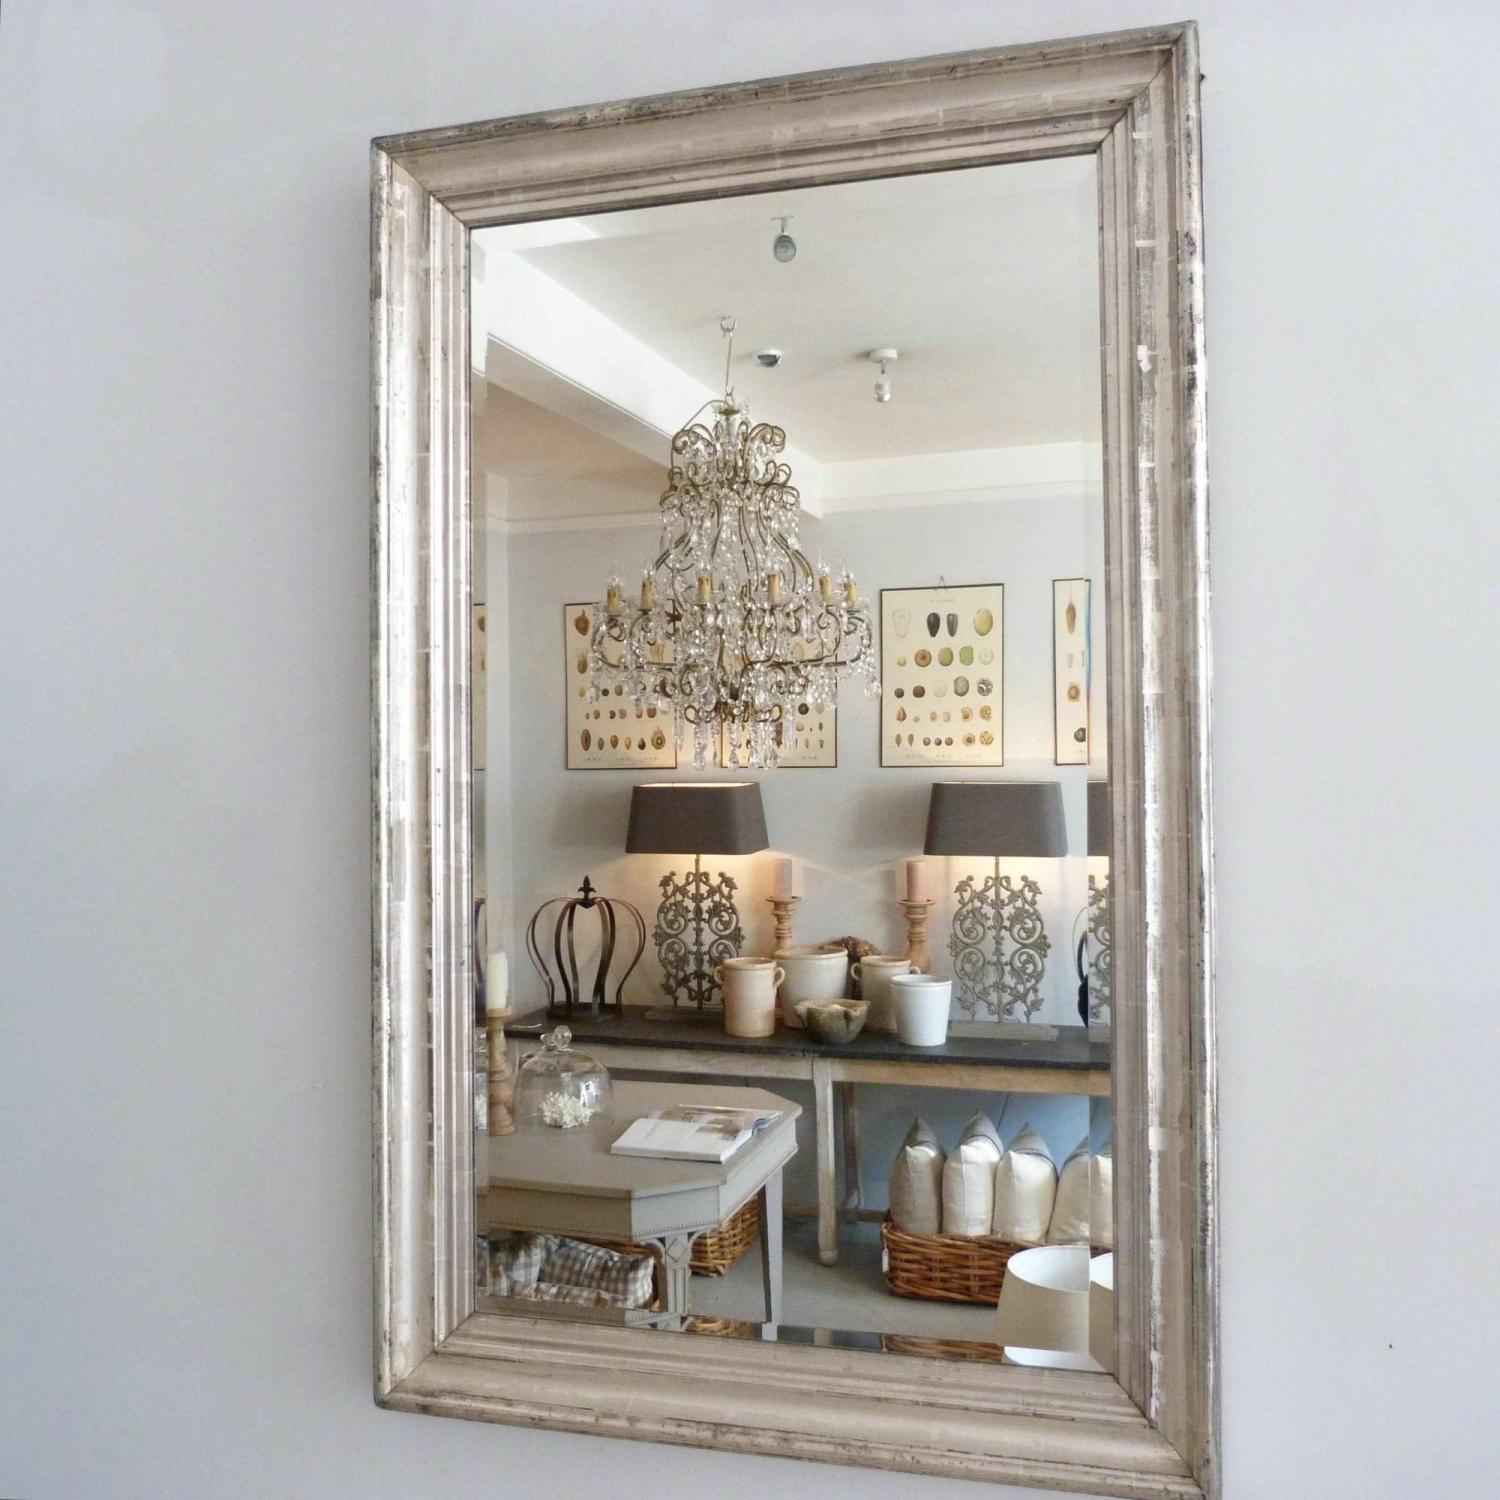 19TH CENTURY SILVER FRAMED FRENCH MIRROR